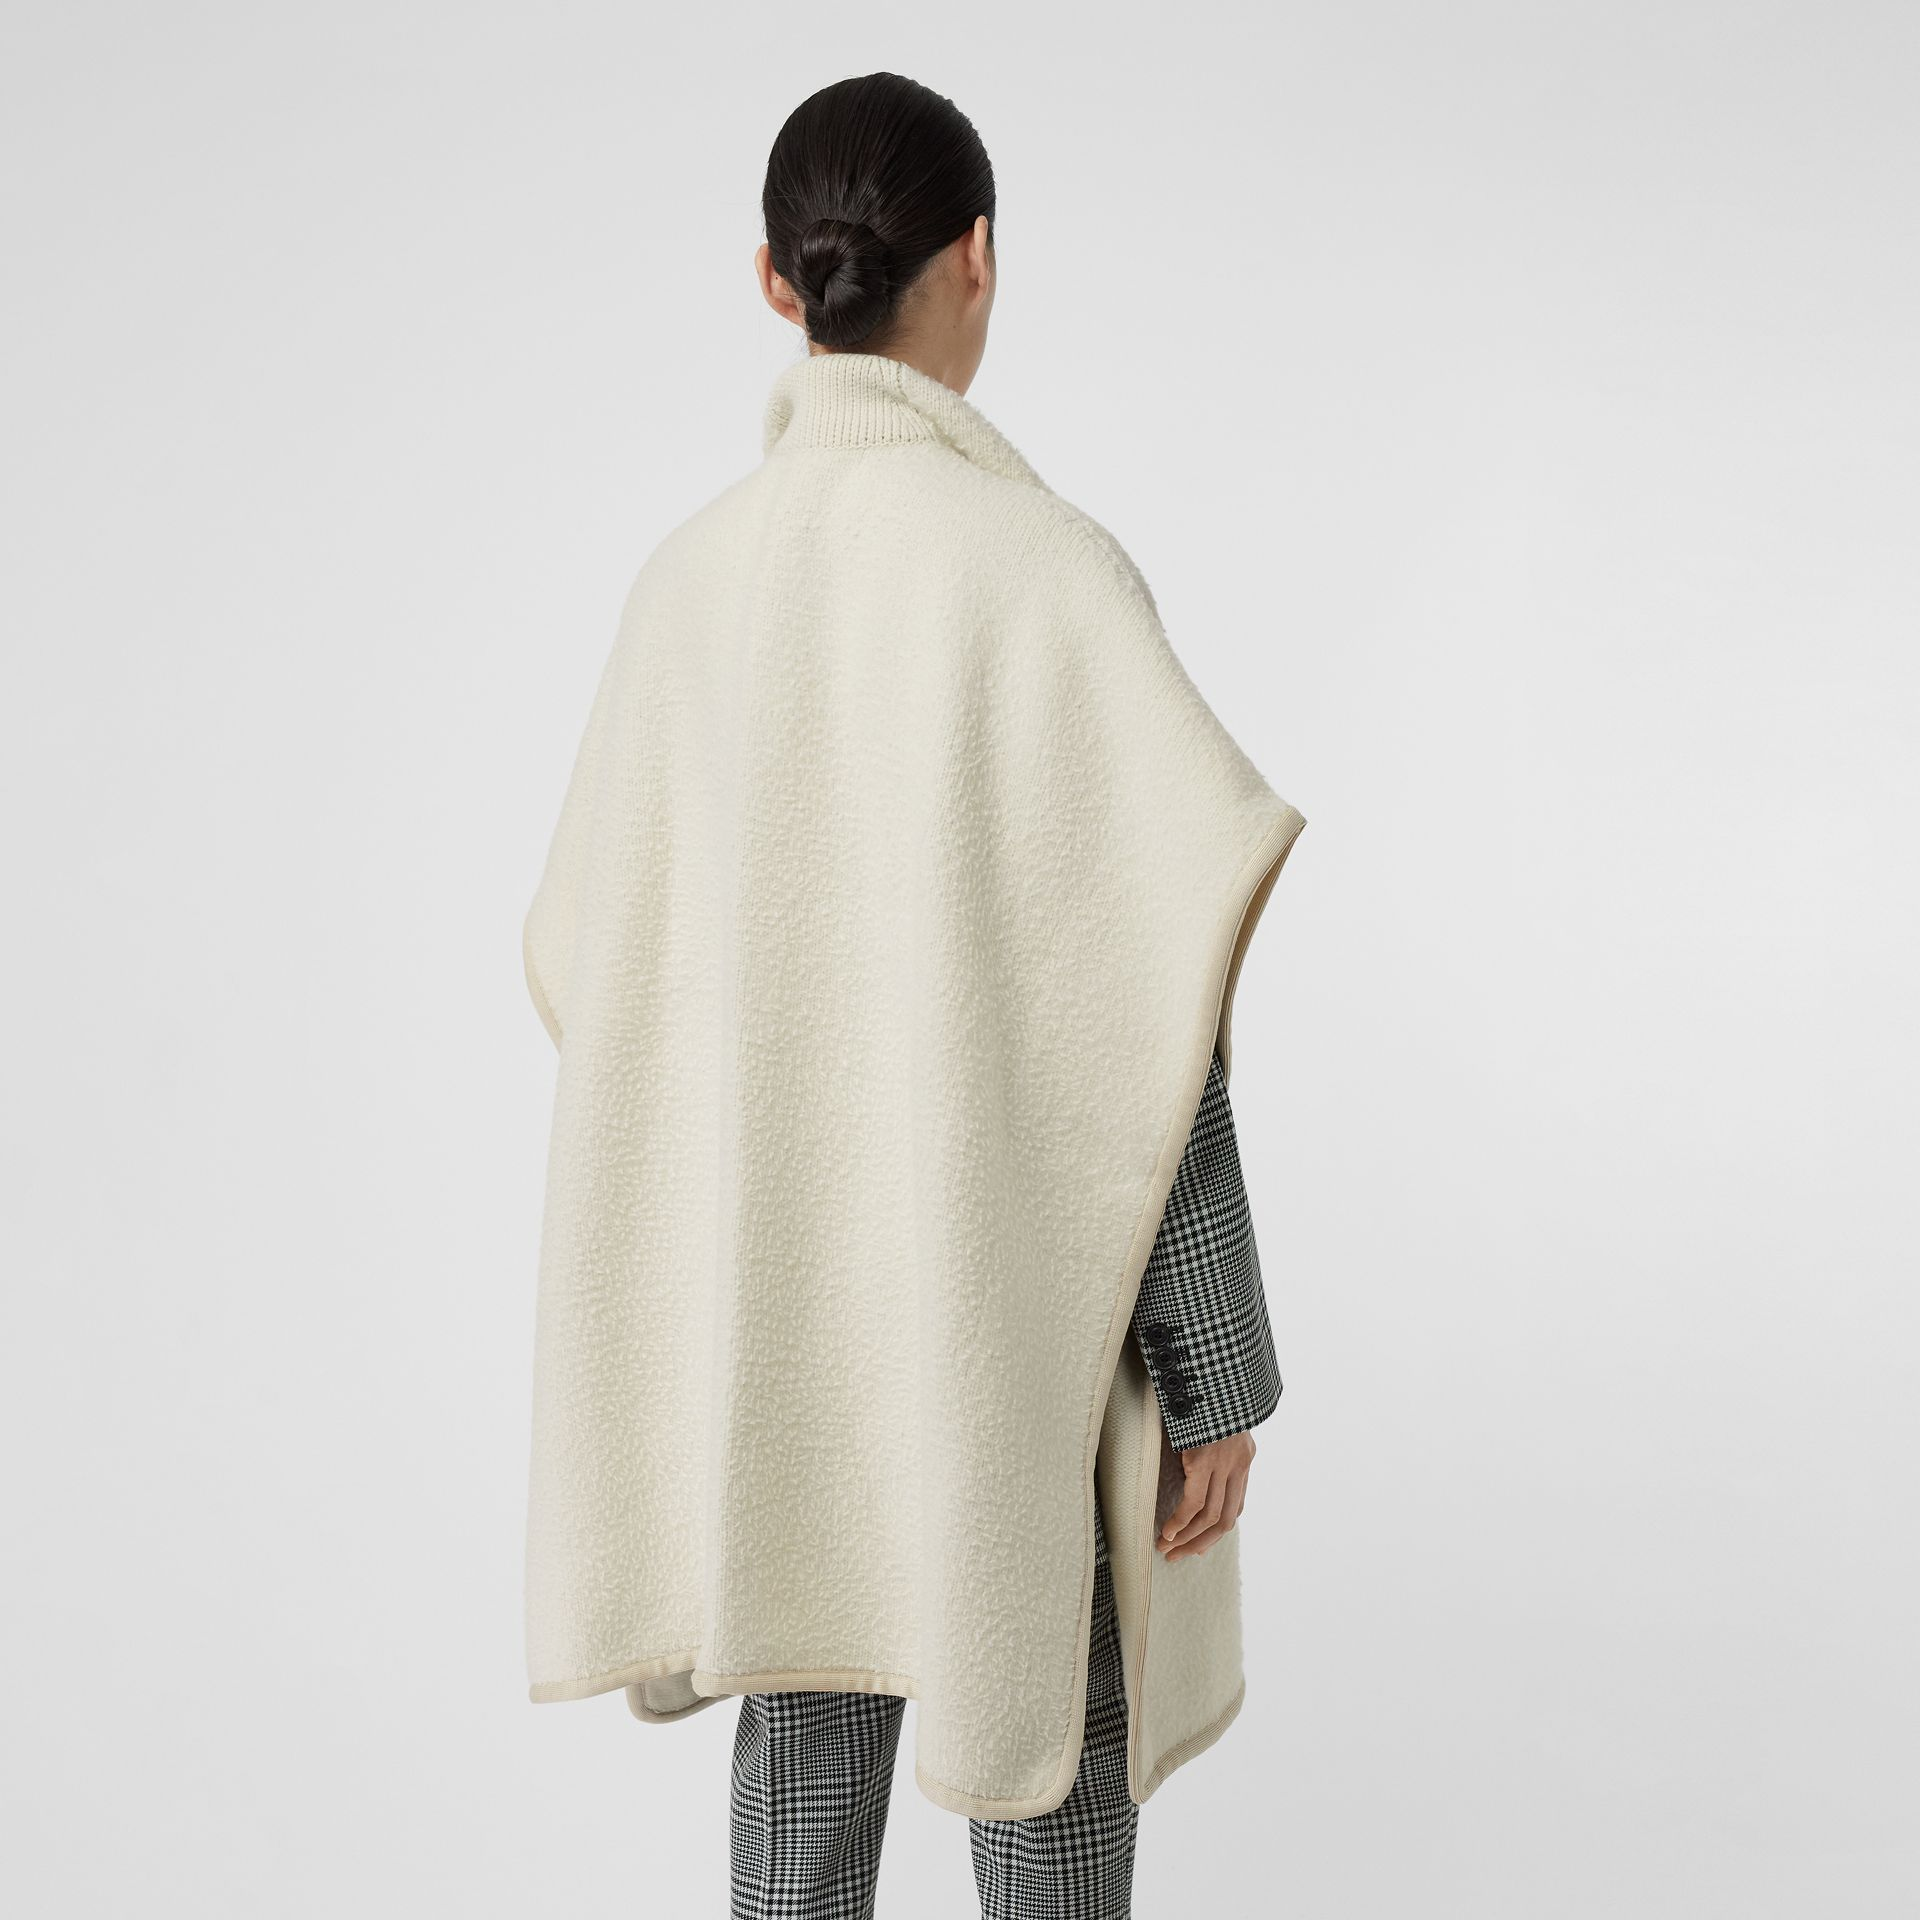 Wool Fleece Cape in Ivory - Women | Burberry Canada - gallery image 2